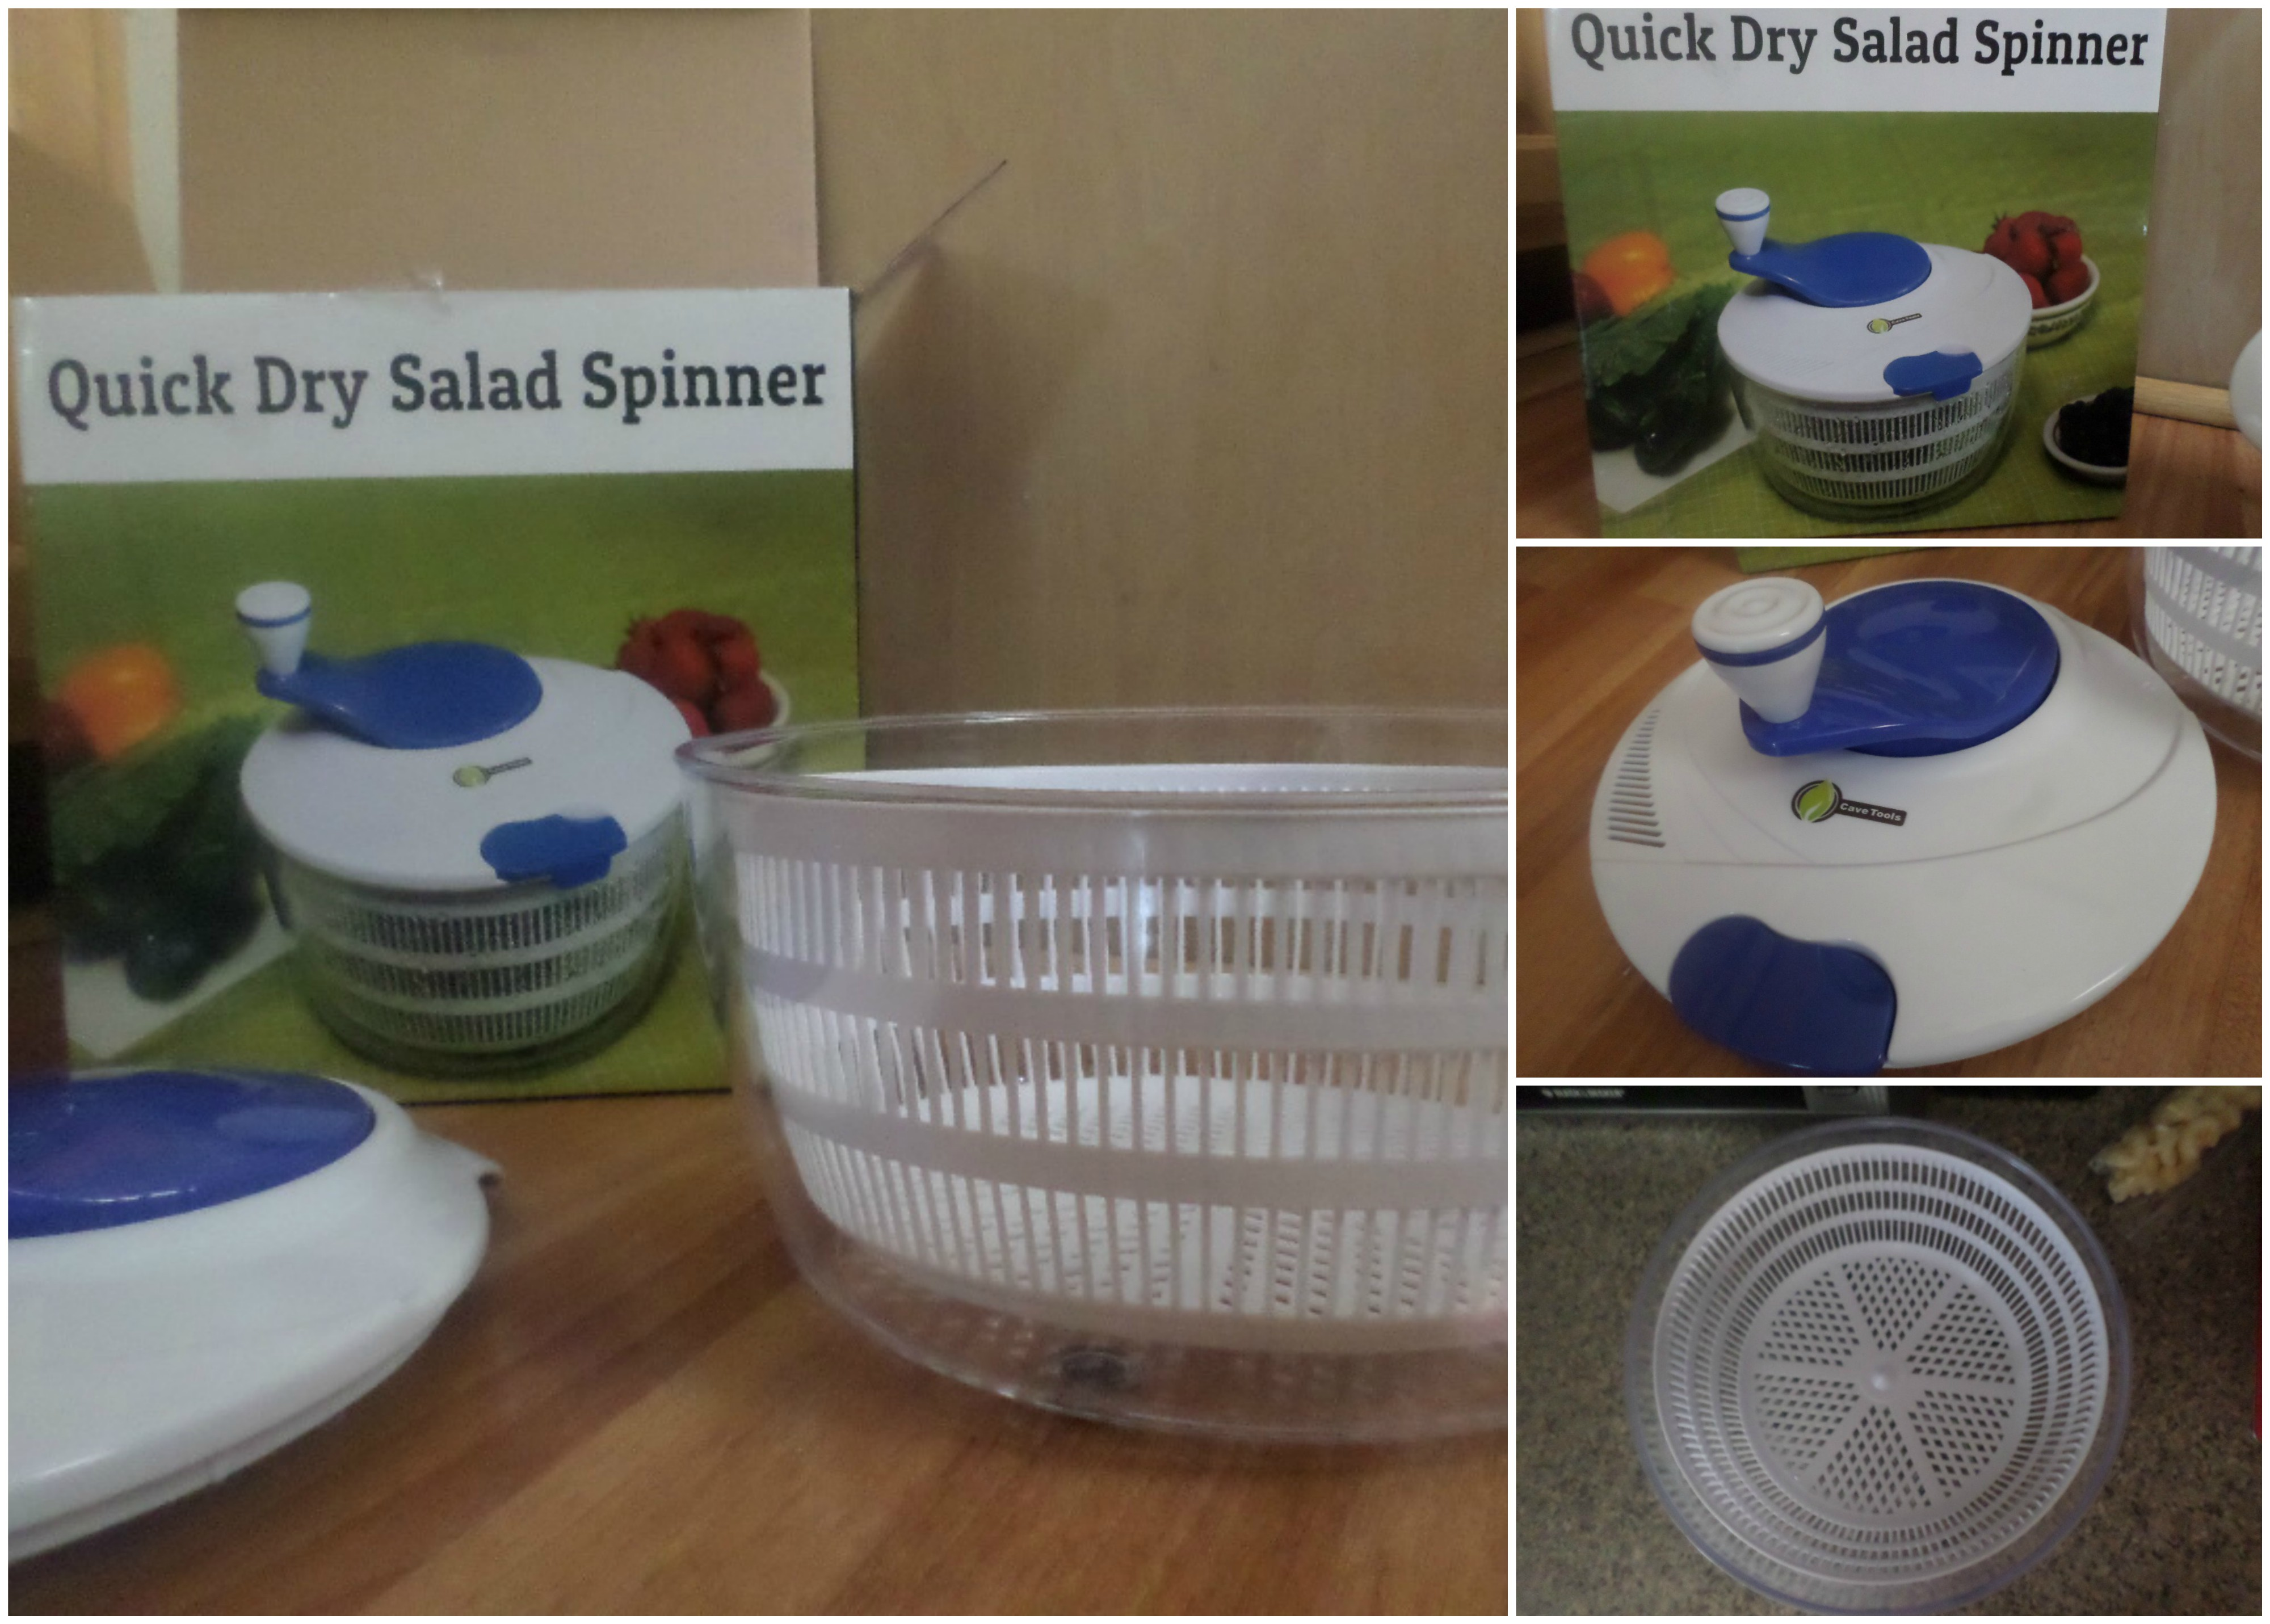 Cave Tools Salad Spinner